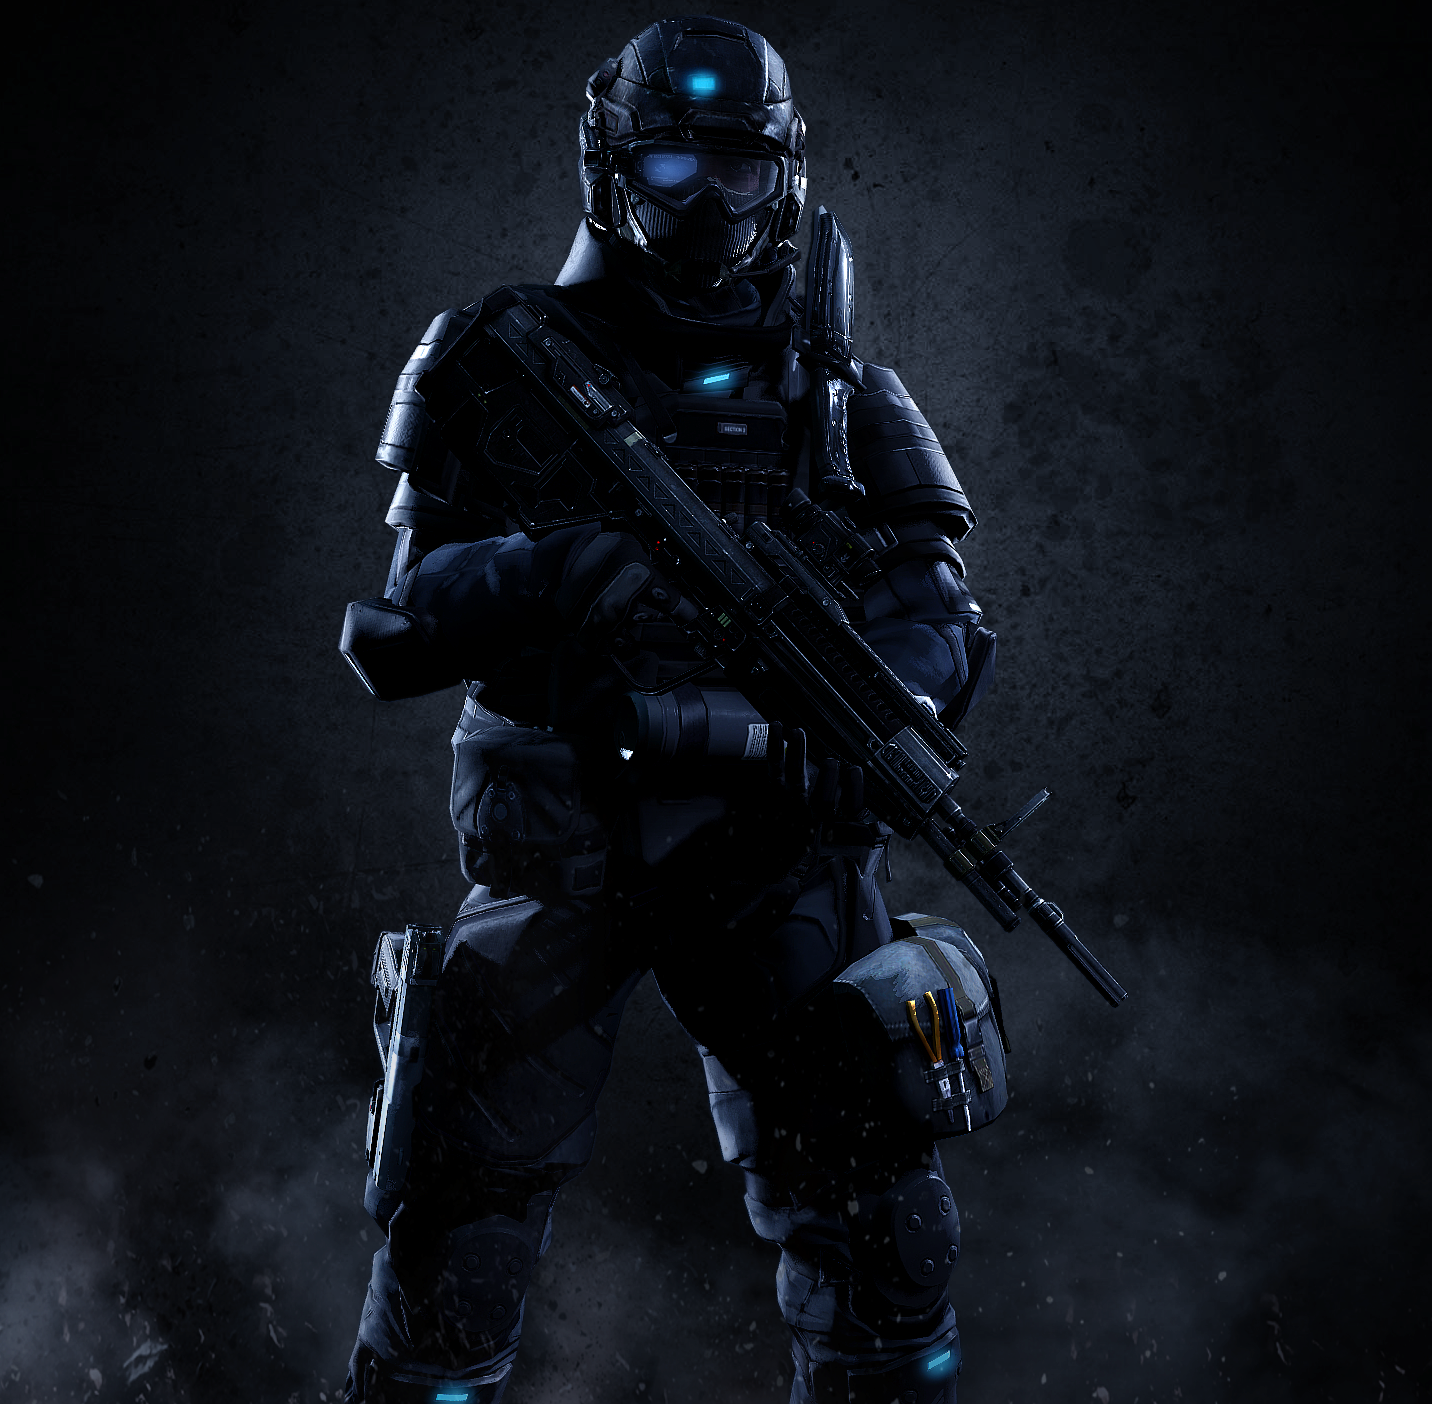 UNSC Army Soldier 5 by LordHayabusa357